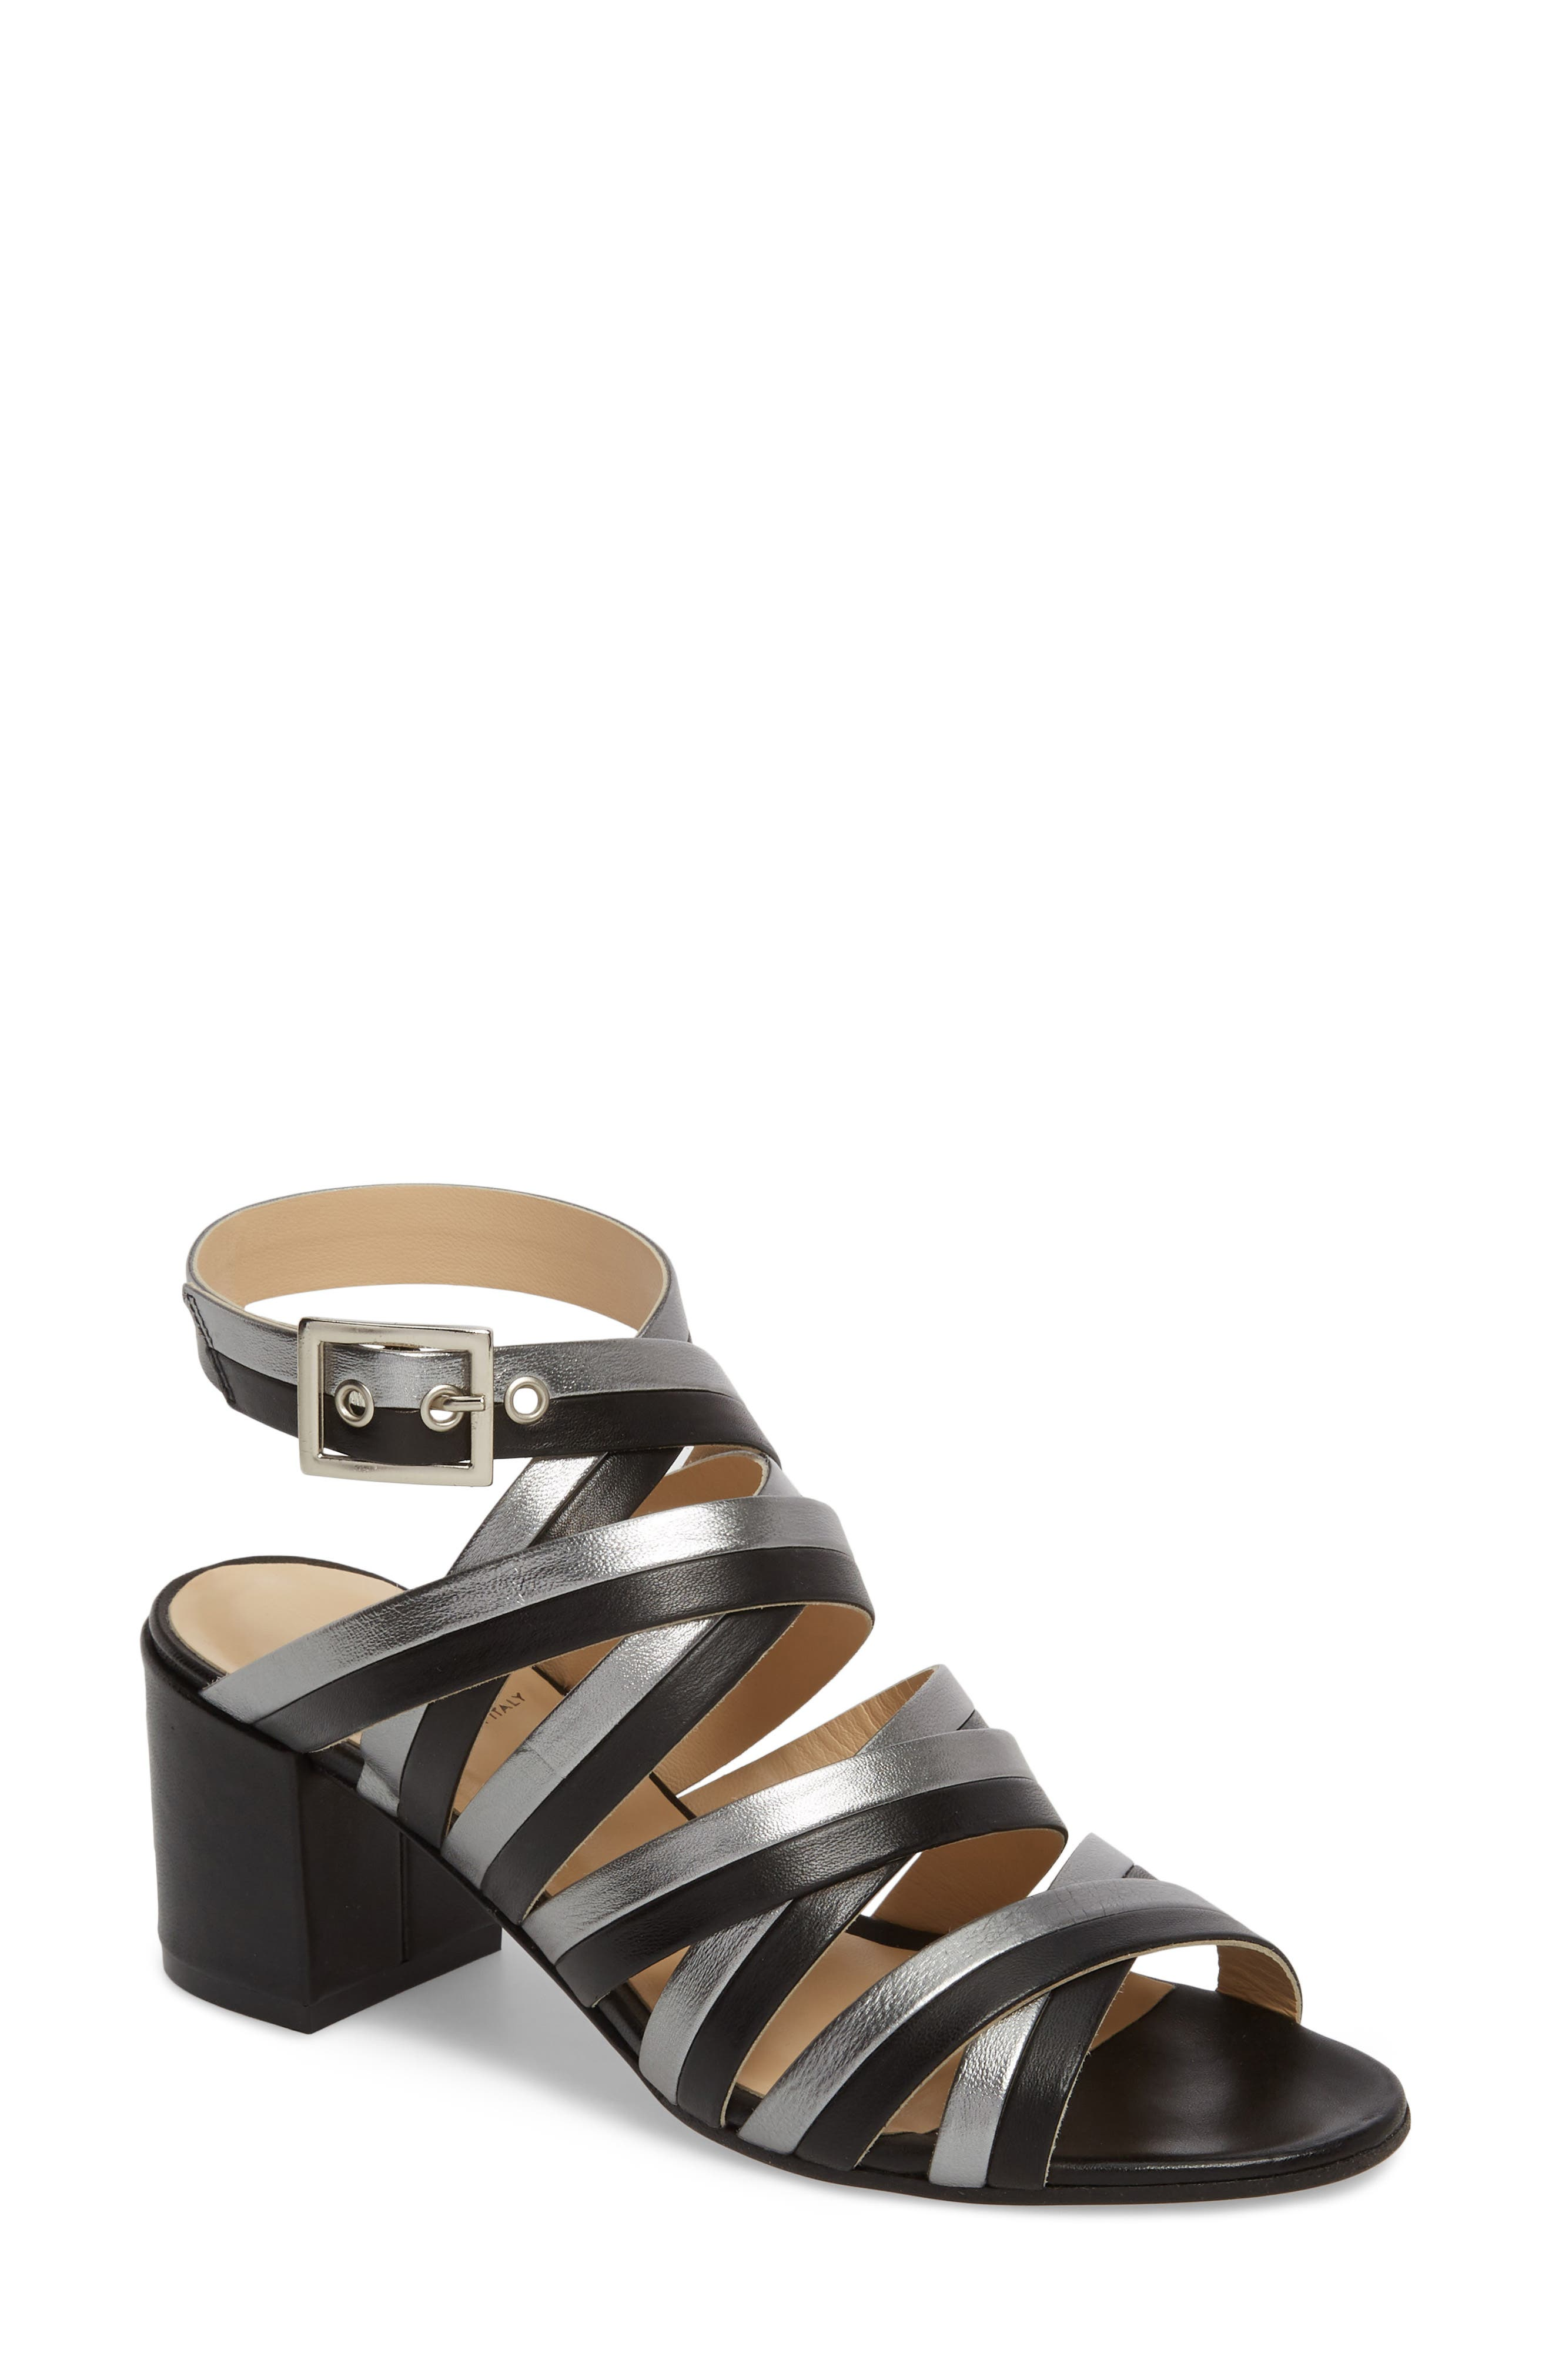 AMALFI BY RANGONI Leda Strappy Sandal in Black Leather